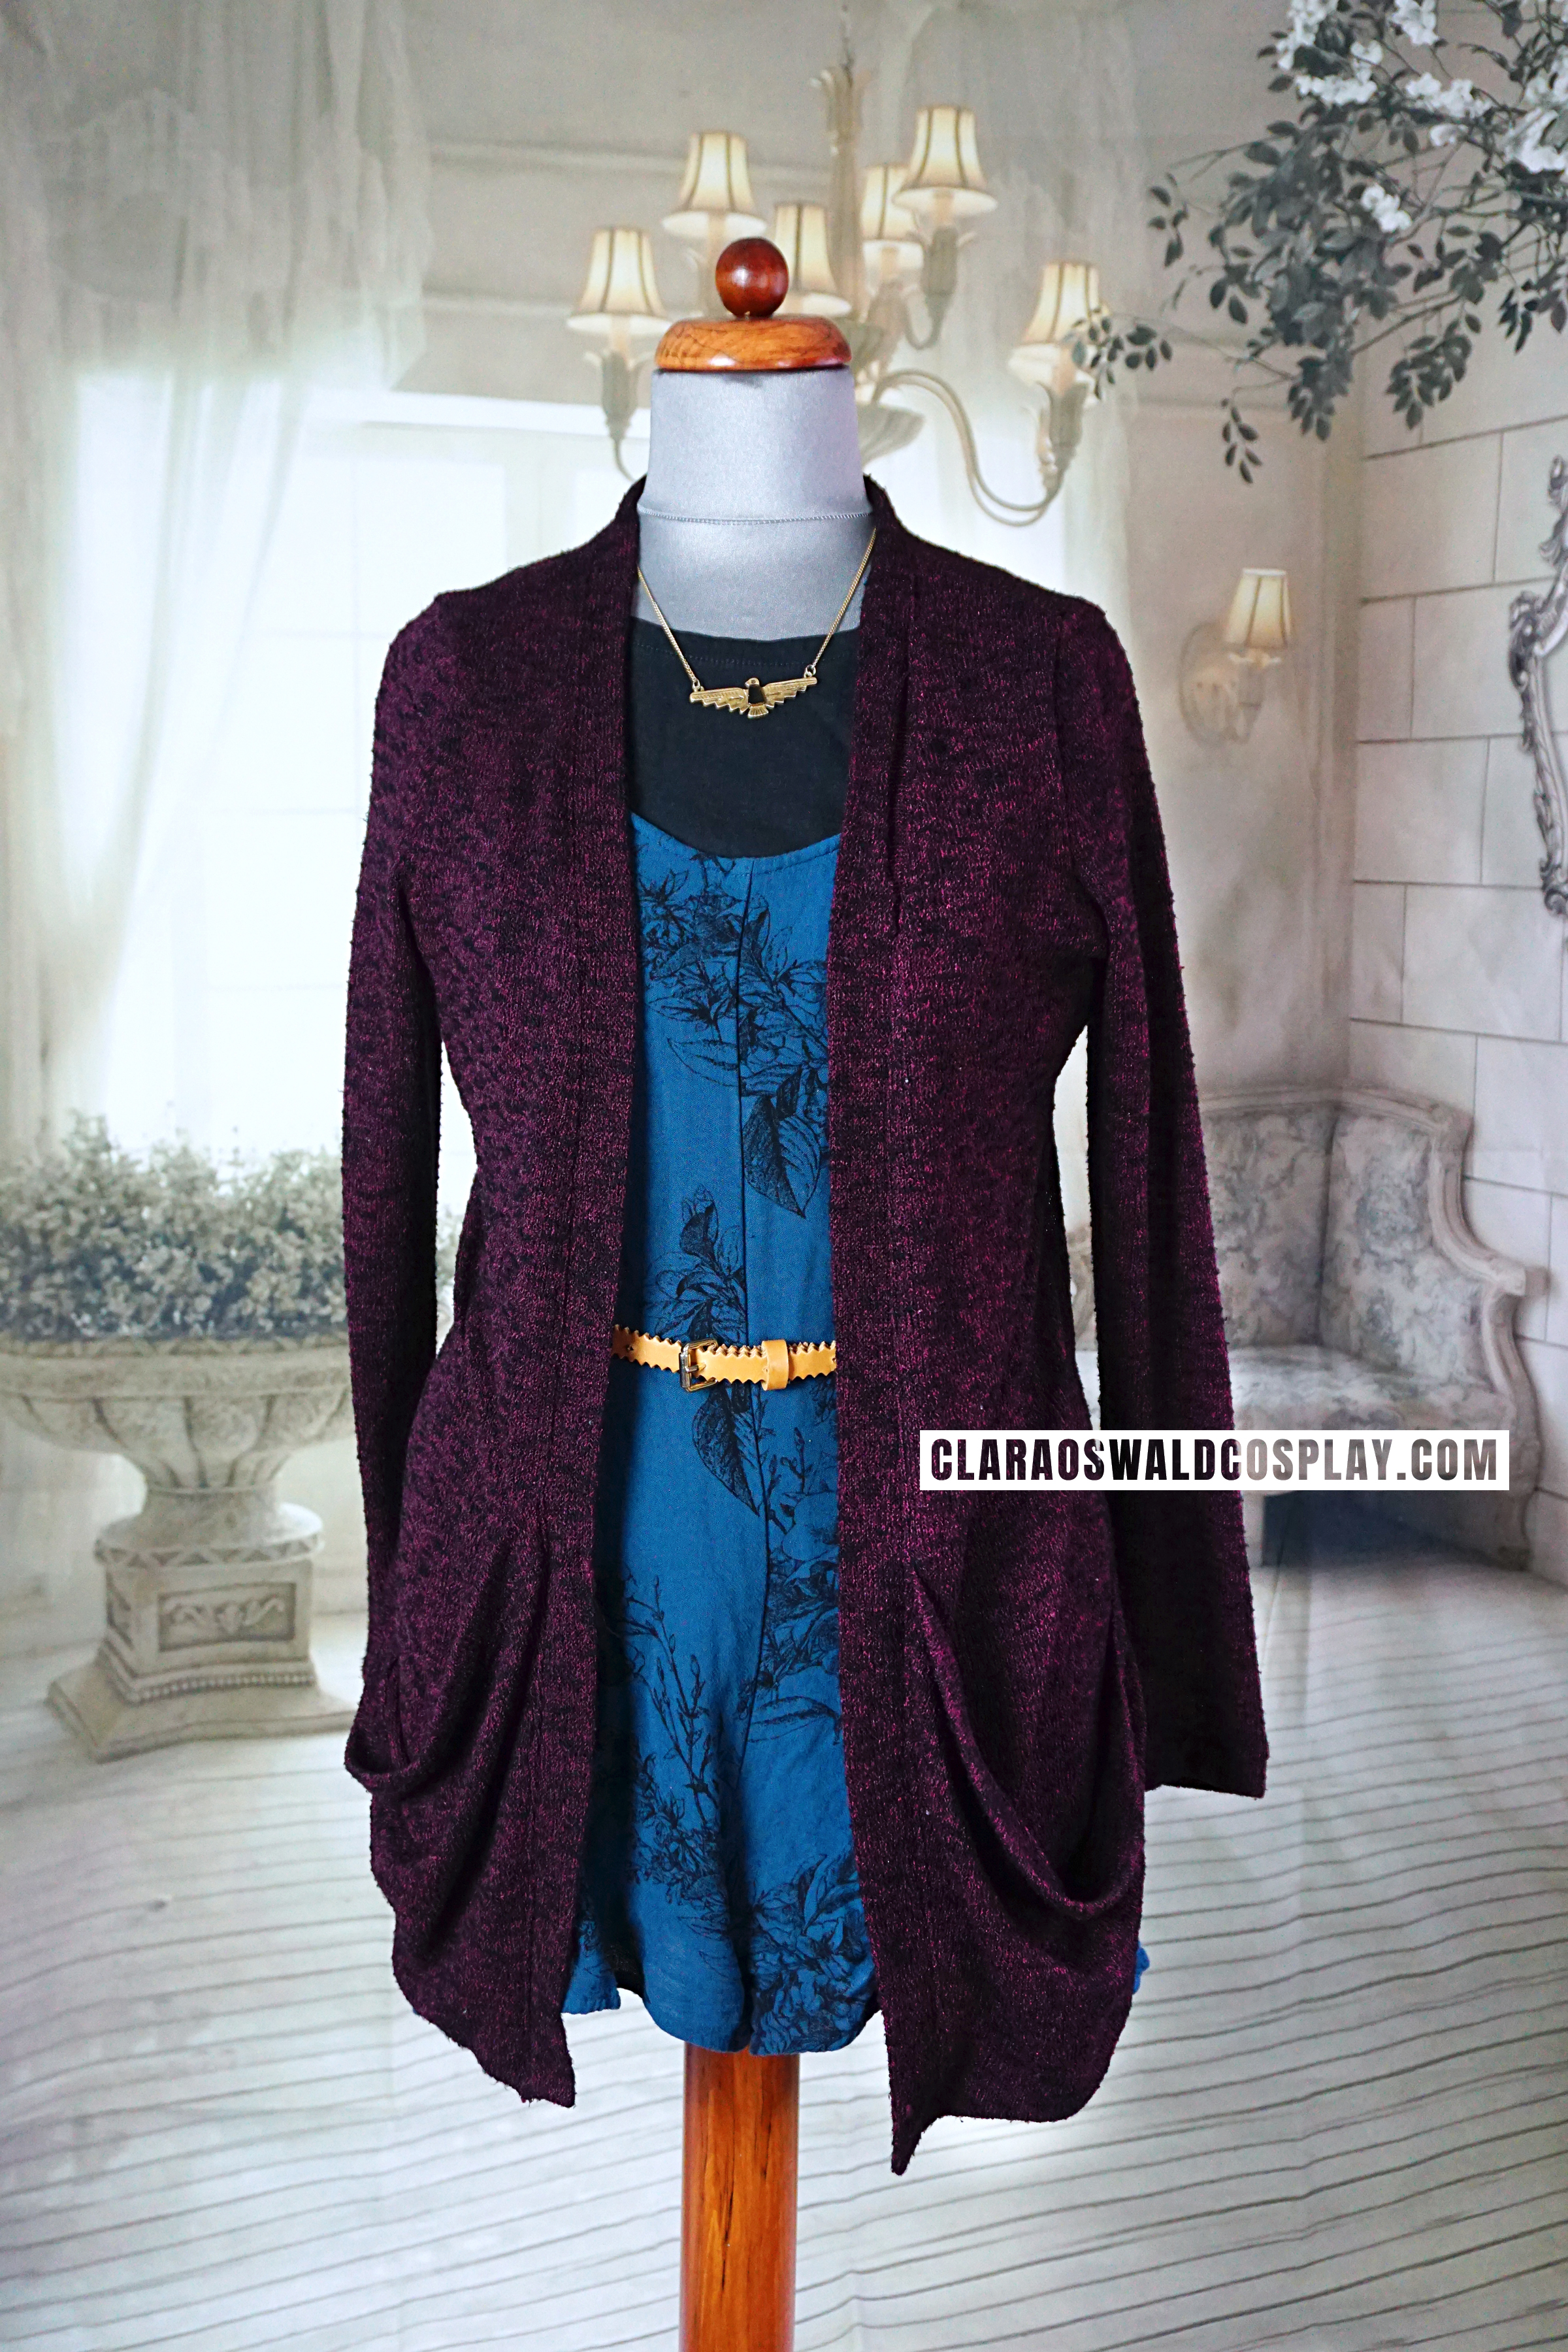 Clara Oswald's Crimson Horror outfit featuring the Urban Outfitters Sparkle & Fade Playsuit, the Urban Outfitters Sparkle & Fade Burgundy Cardigan, un-IDed black t-shirt and belt